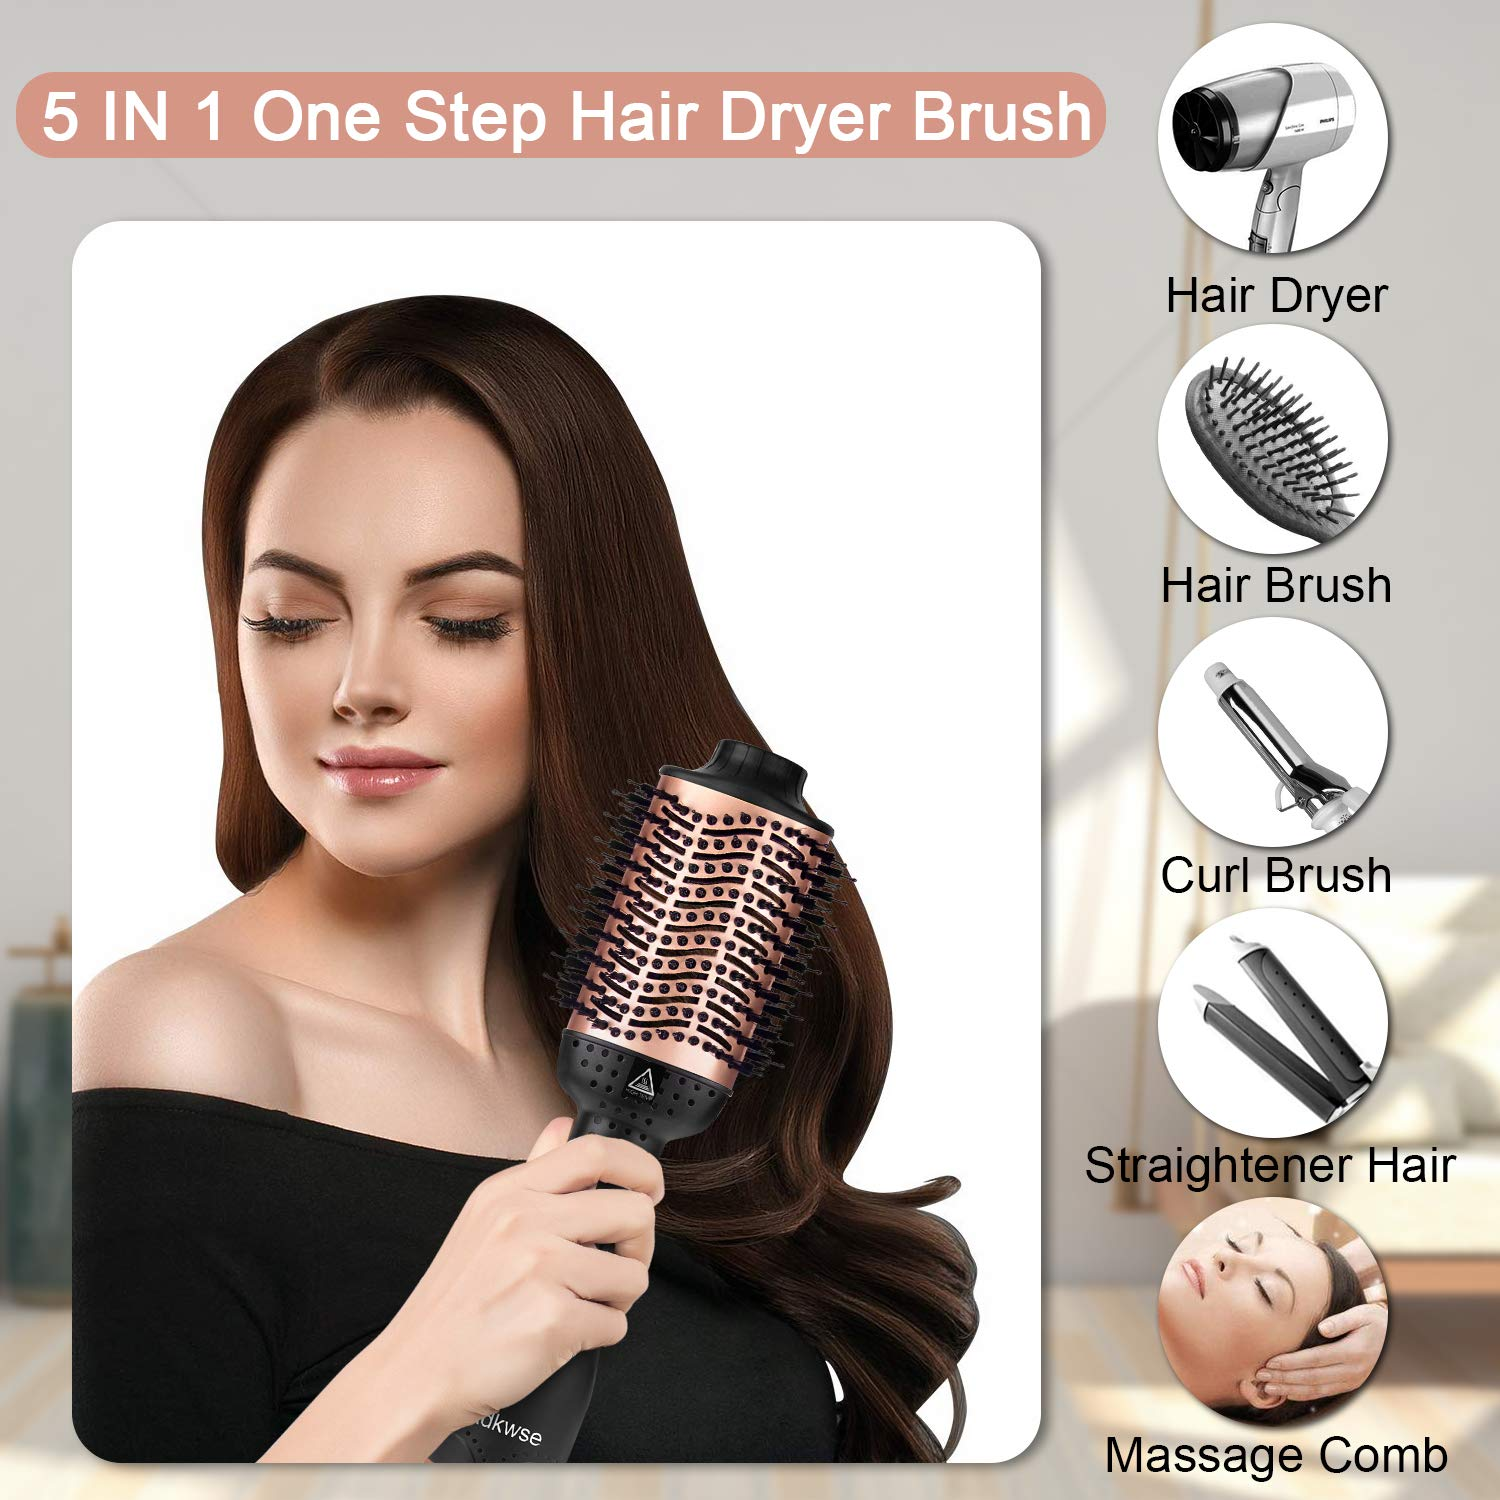 Adkwse Hair Dryer Brush, Hot Air Brush, Hair Dryer and Volumizer Blow Brush, 4 in 1 Upgrade Hair Brush Dryer Styler,Hair Brush Blow Dryer with Negative Ion and Ceramic Coating